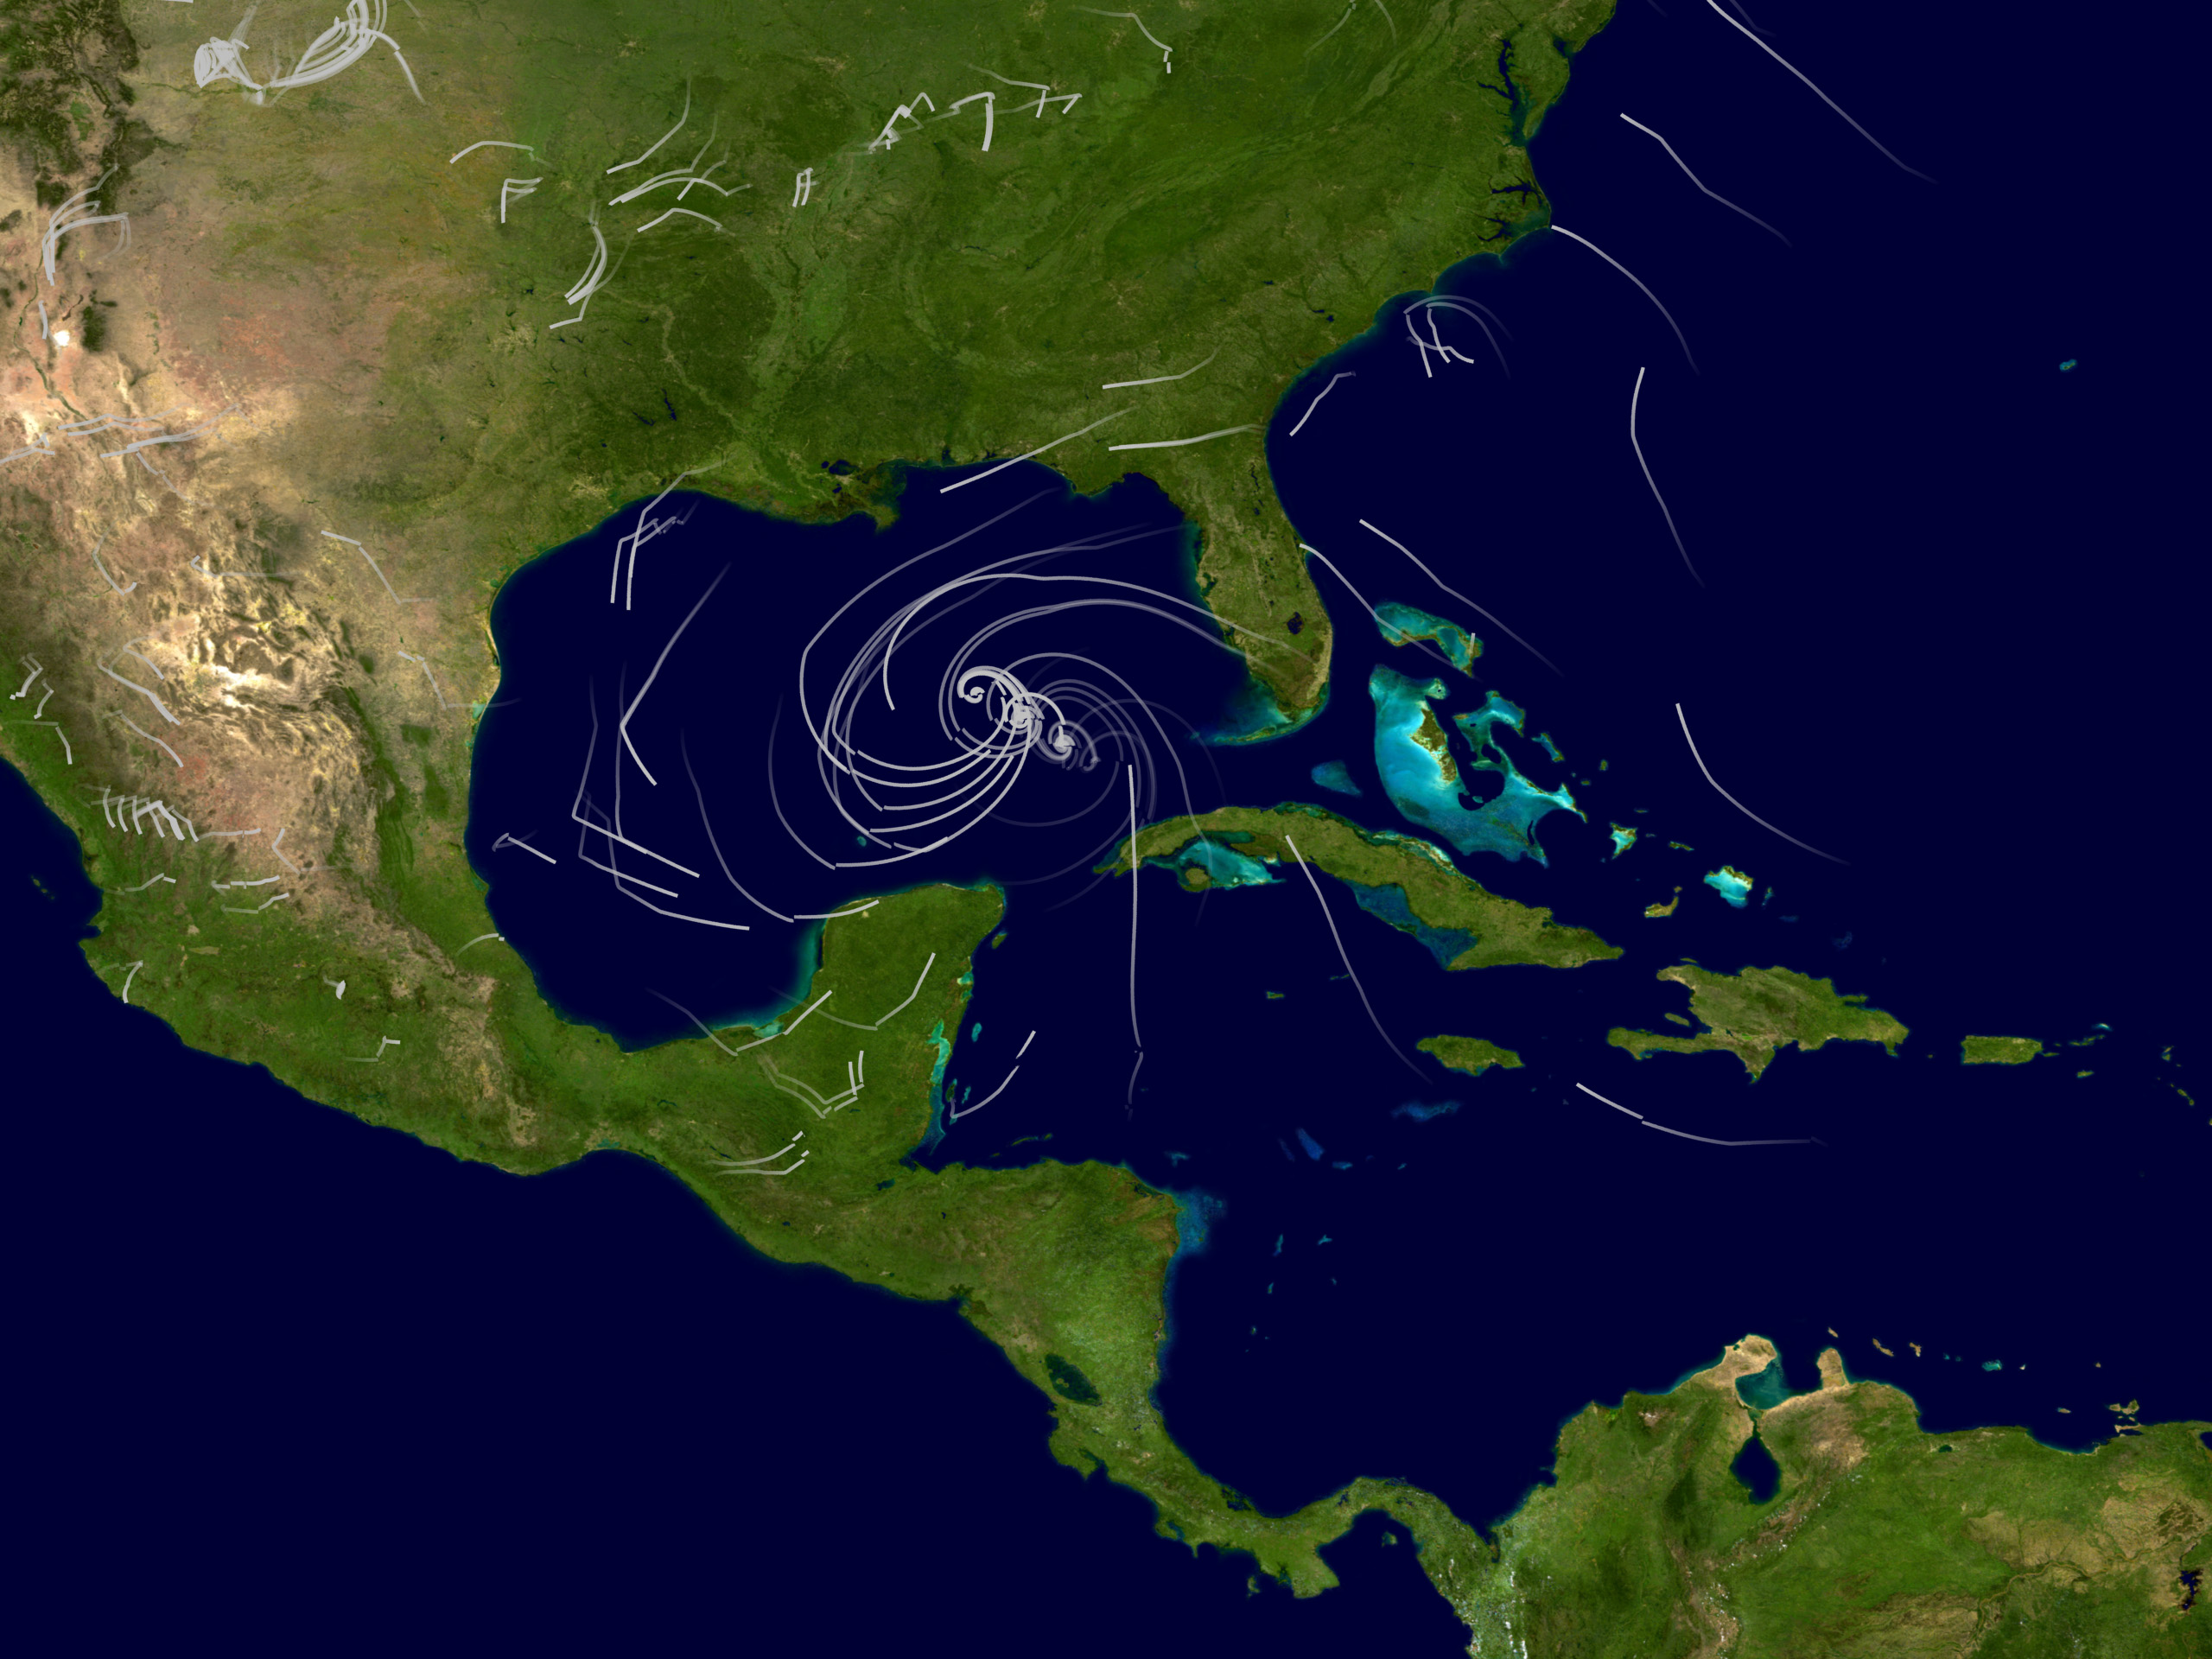 hurricane katrina nasa earth observatory - photo #39